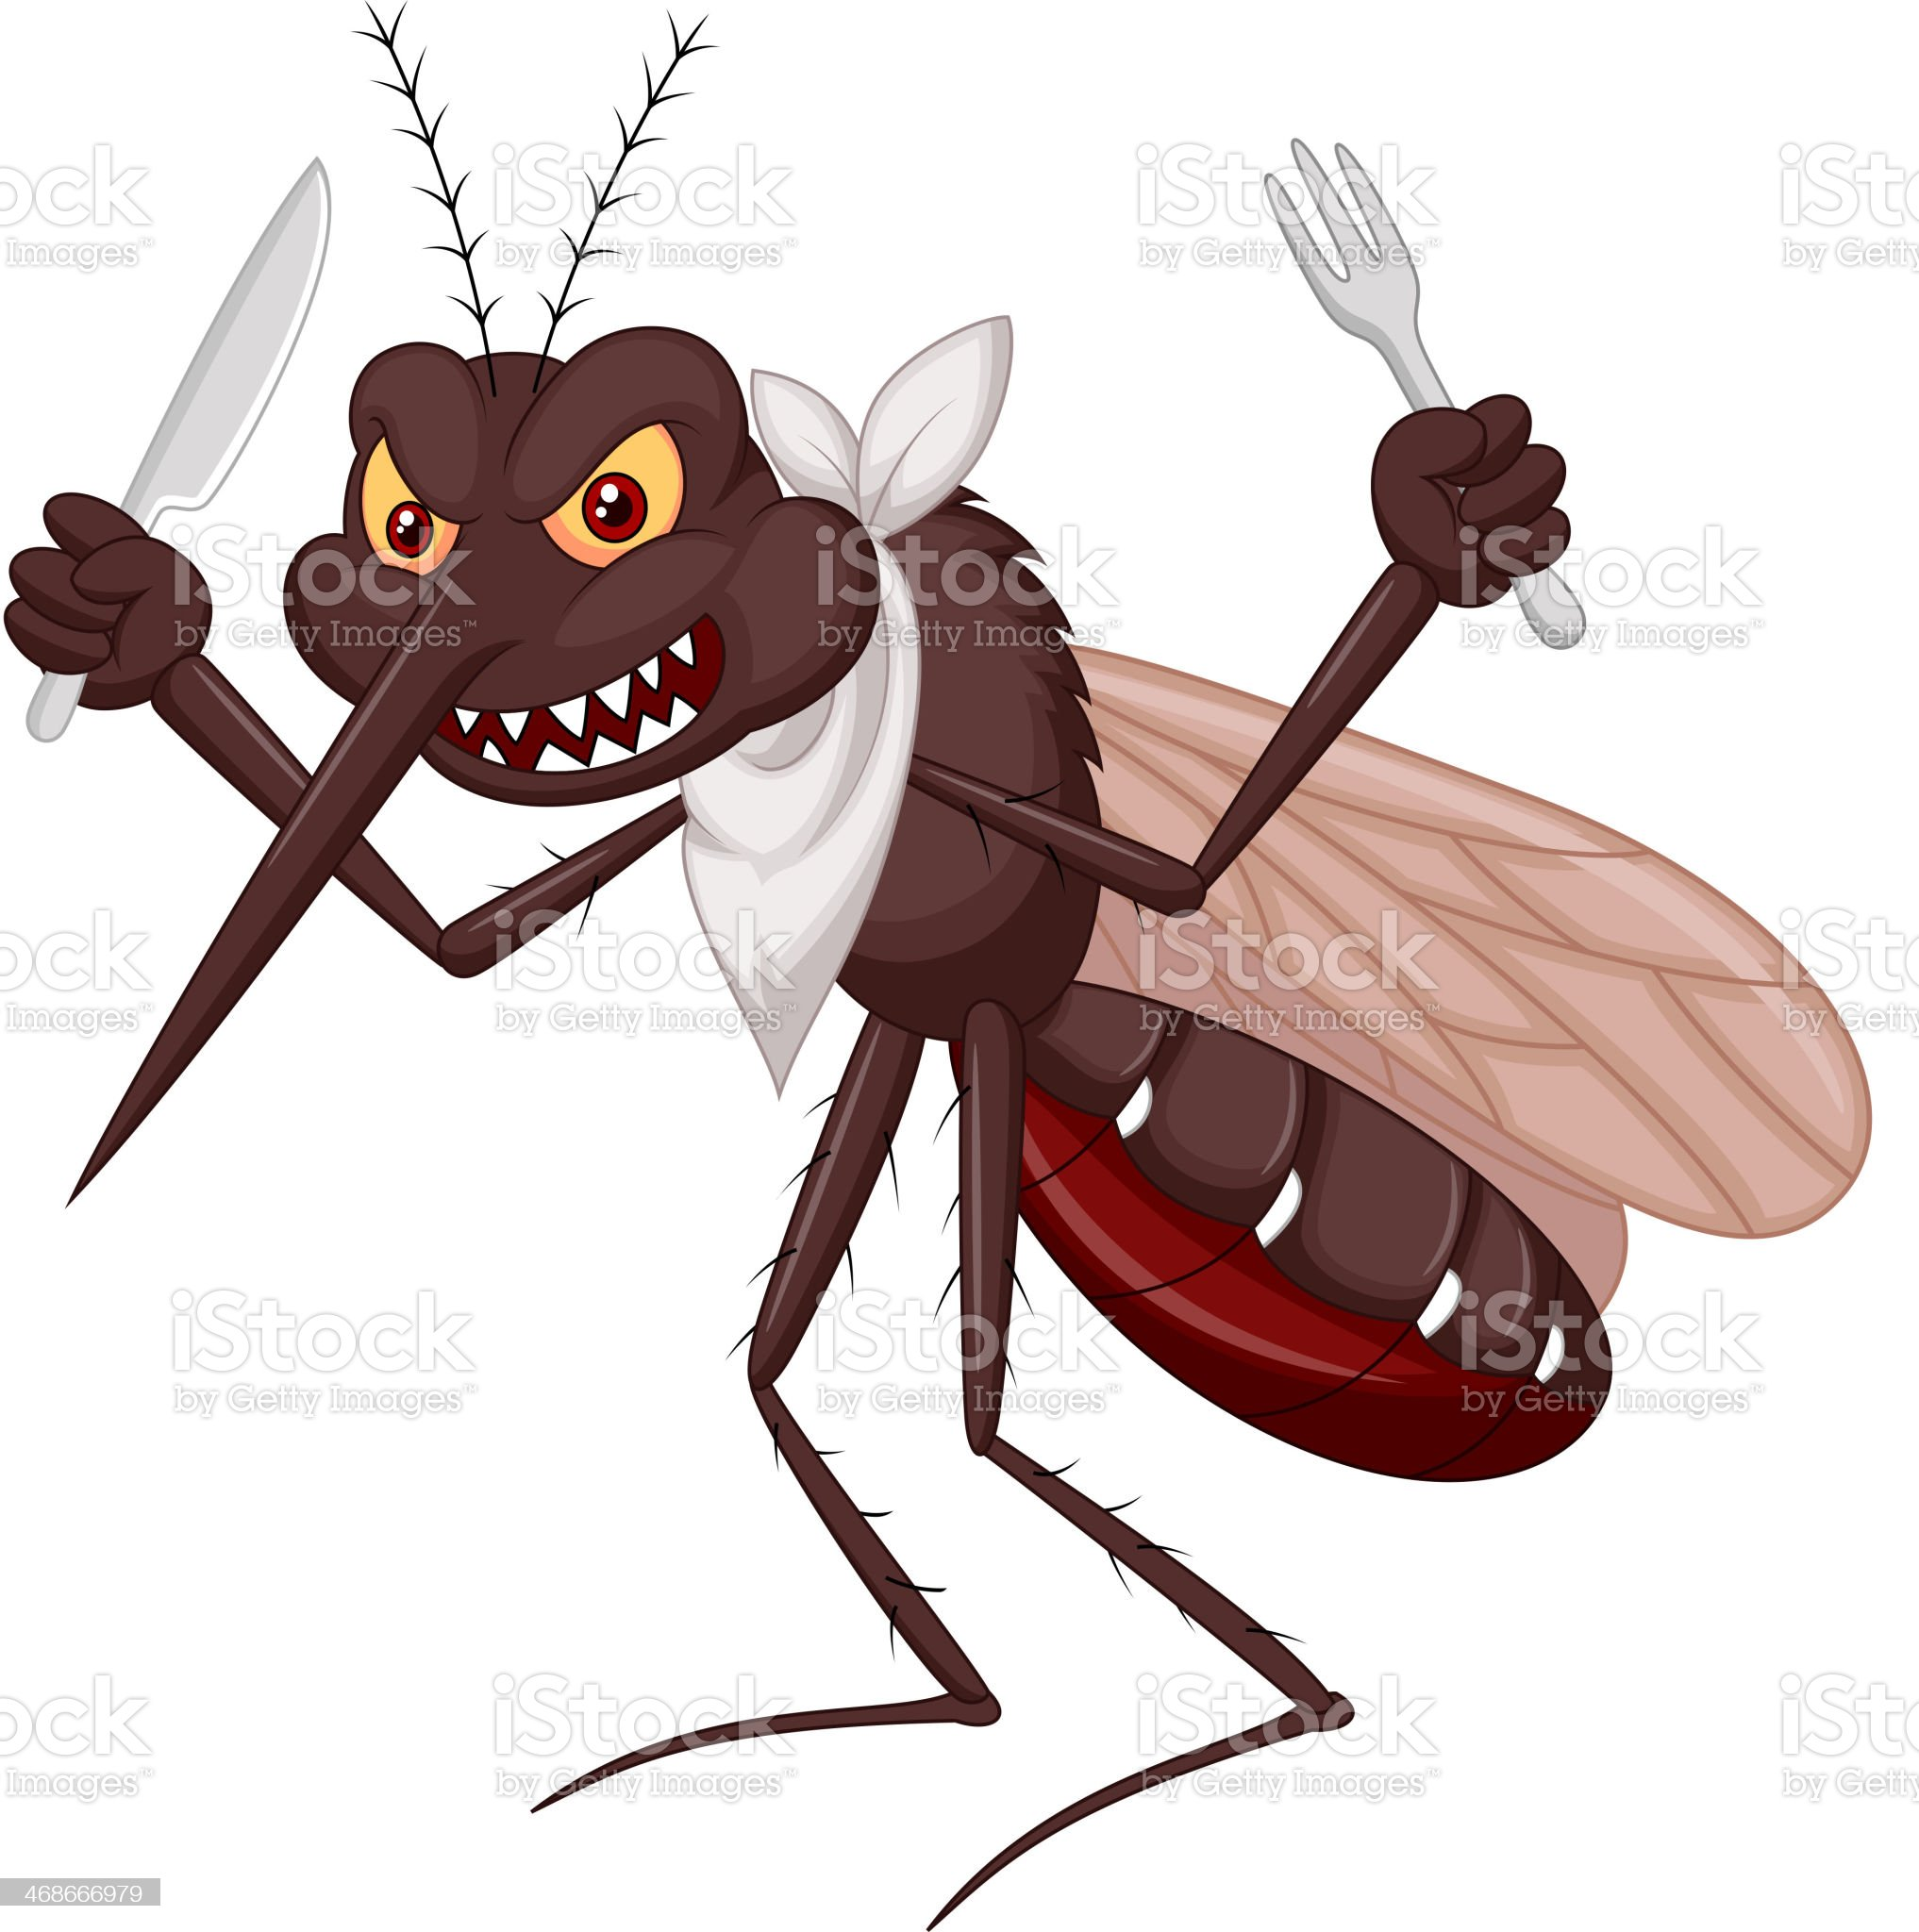 Mosquito cartoon ready for eat royalty-free stock vector art